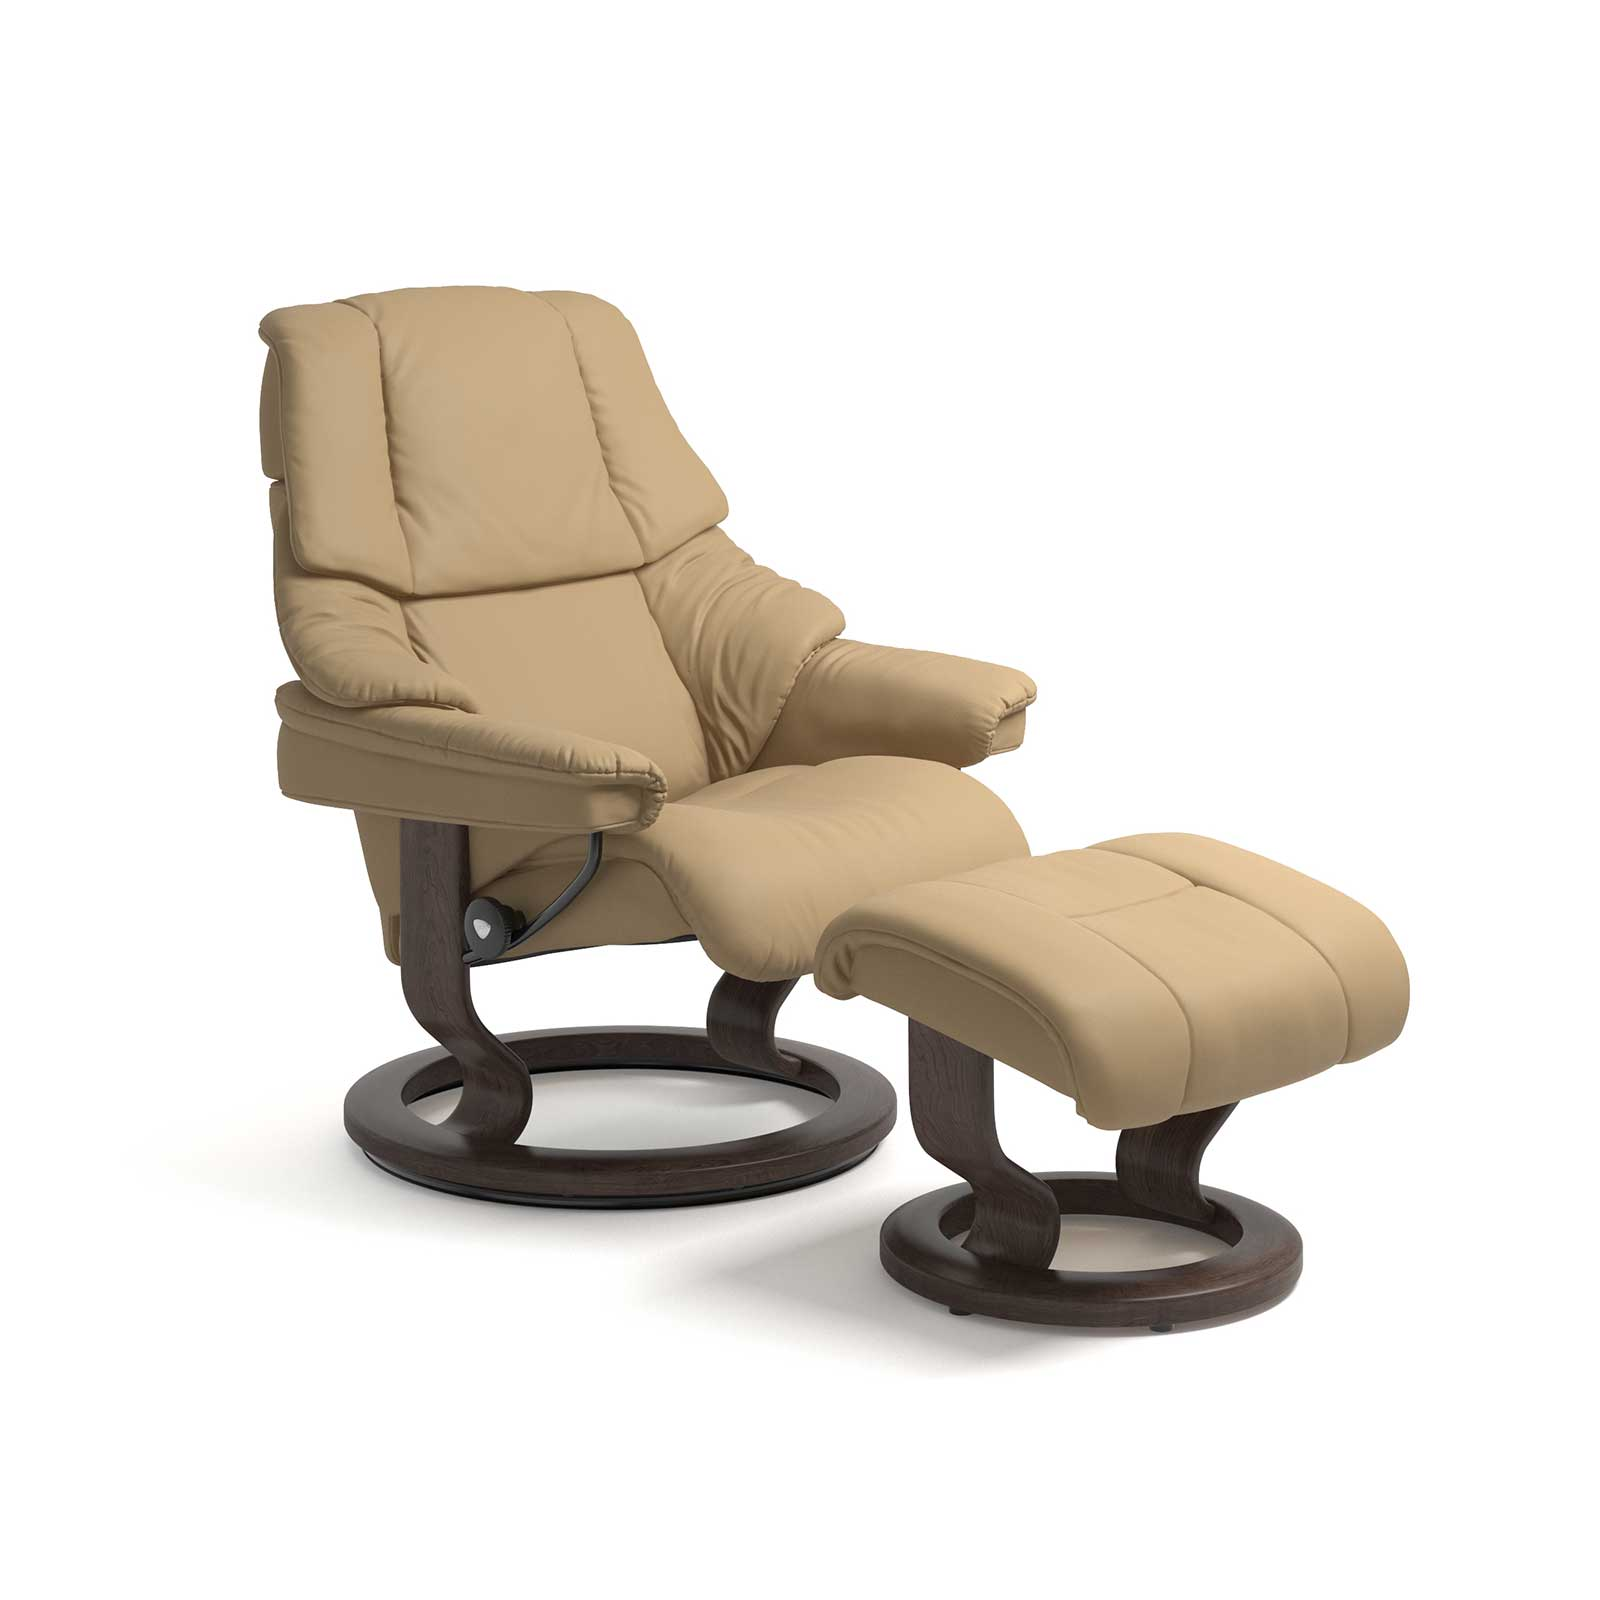 Stressless Sessel Berlin Stressless Sessel Reno Paloma Sand Mit Hocker Stressless